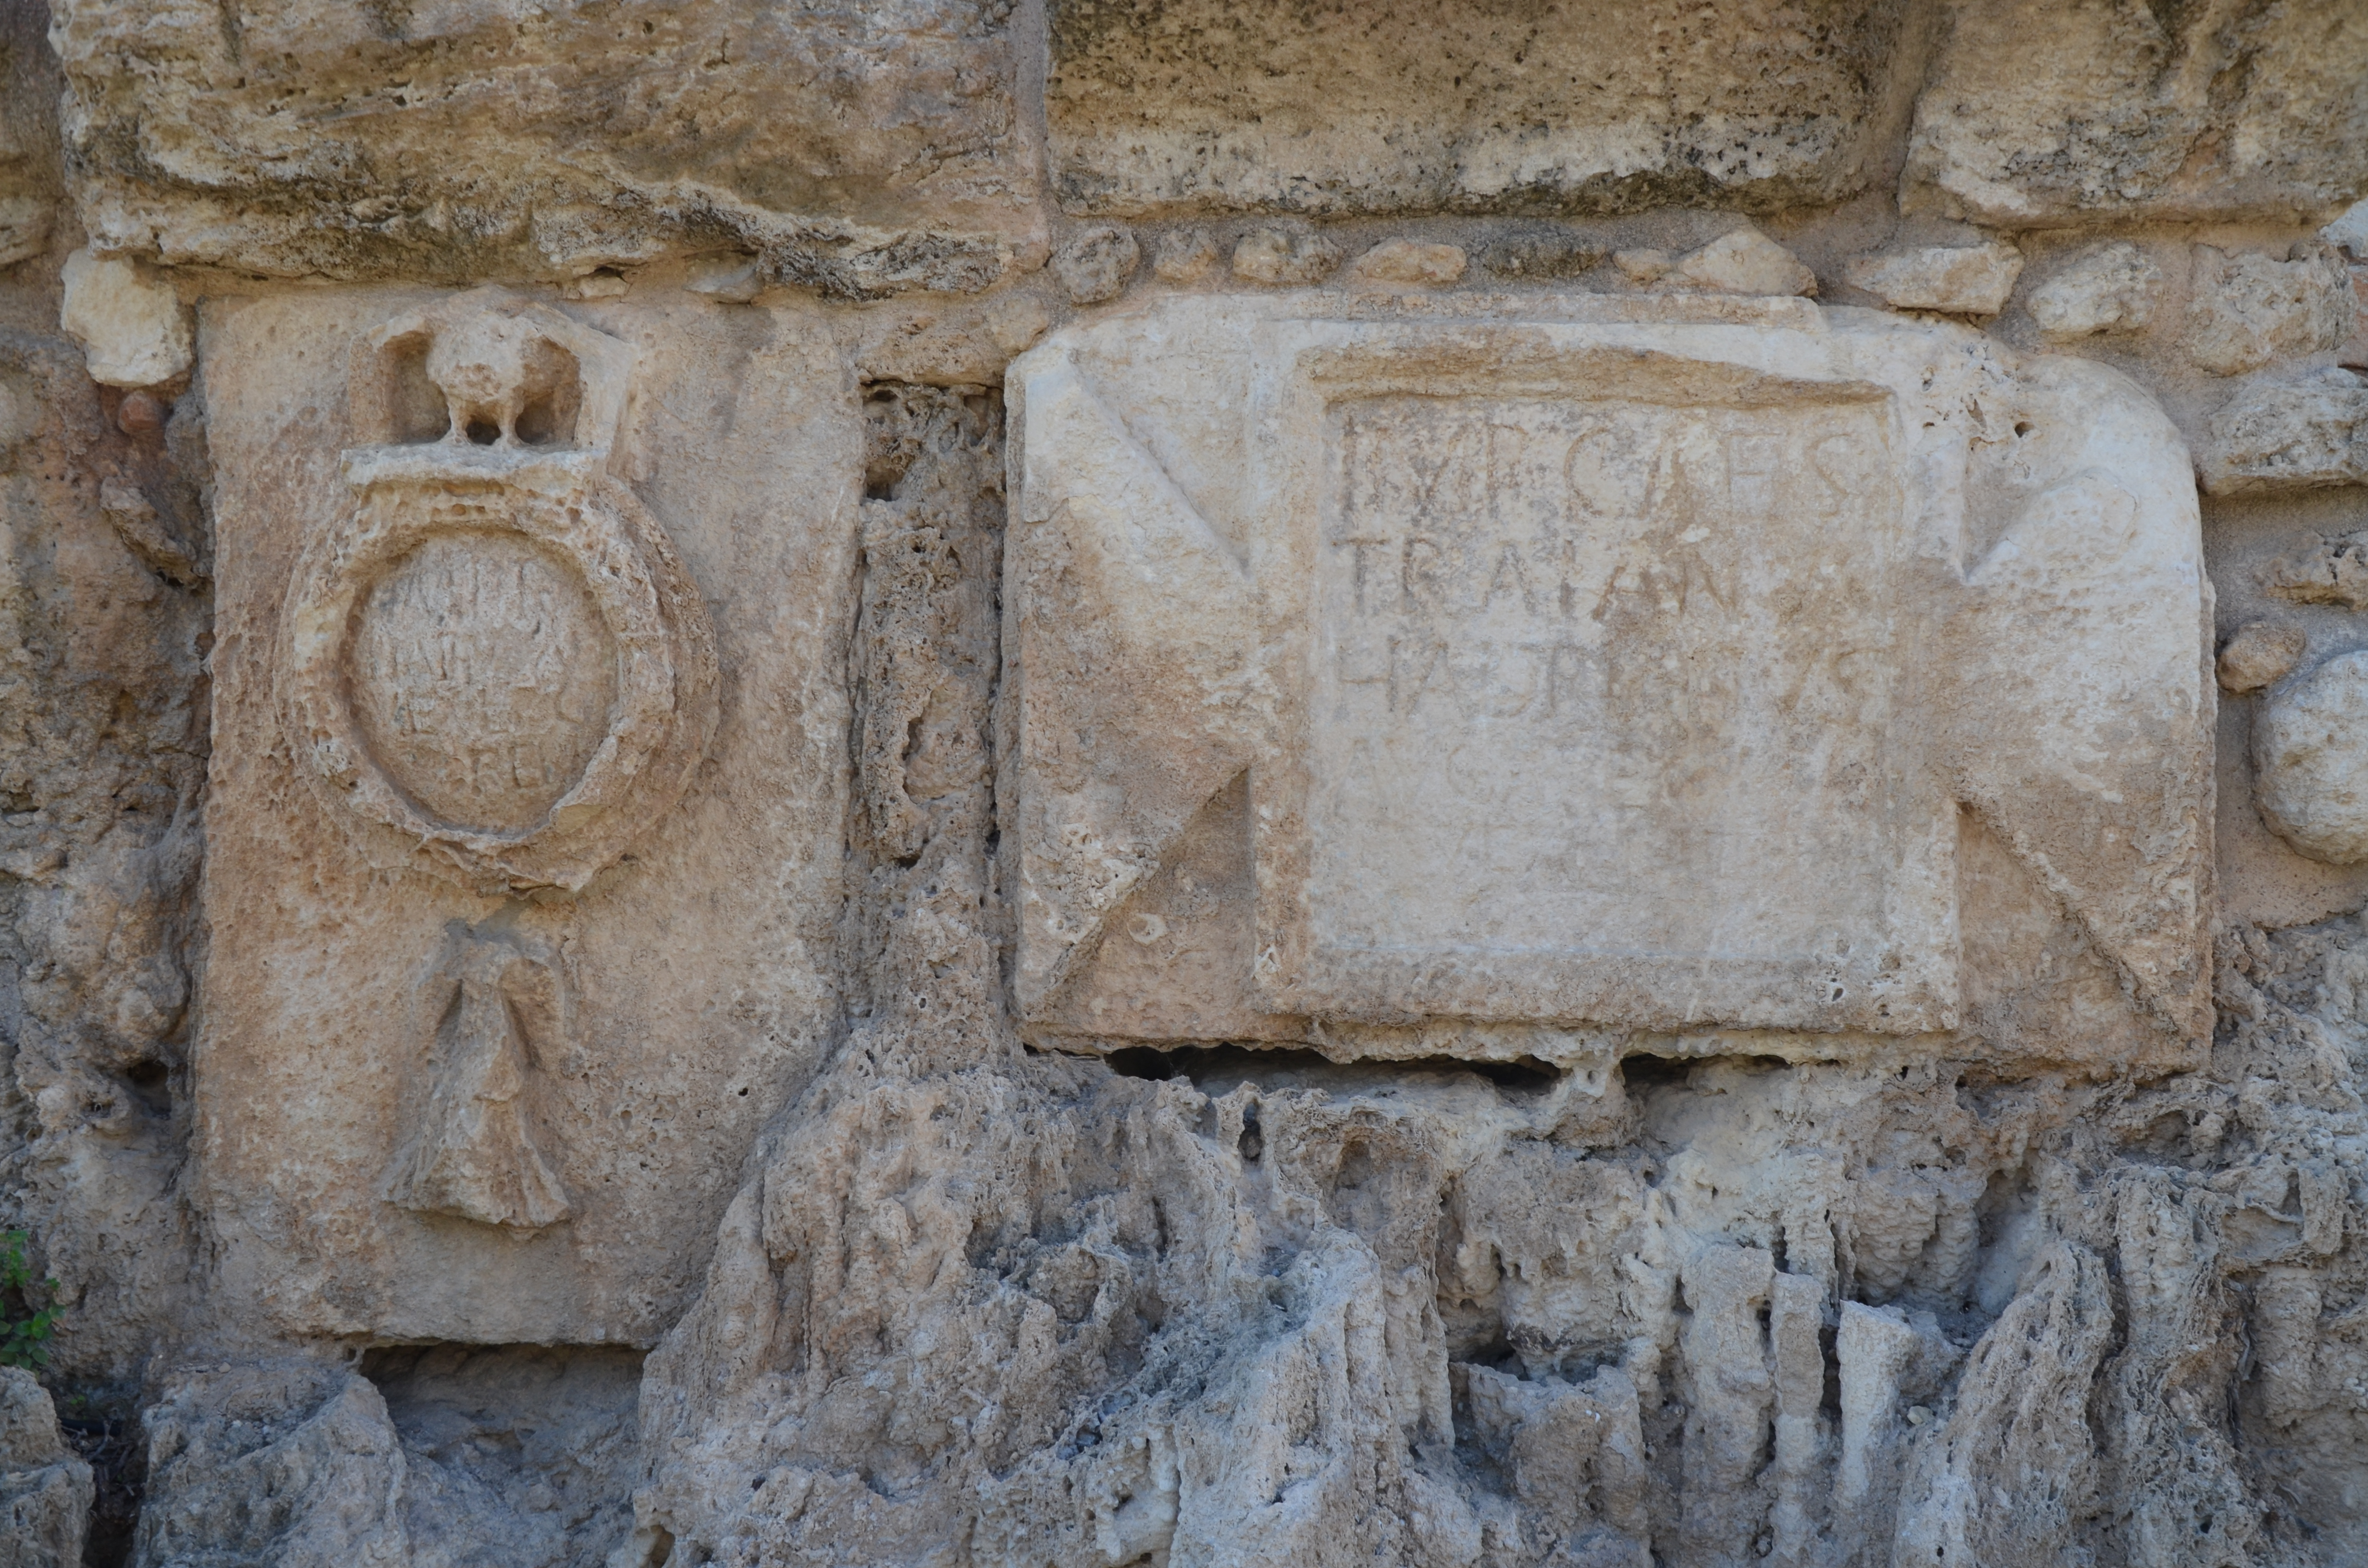 File Inscription From The High Level Aqueduct Of Caesarea At Beit Hananya With Emblem Depicting 10th Legion Israel 15159315893 Jpg